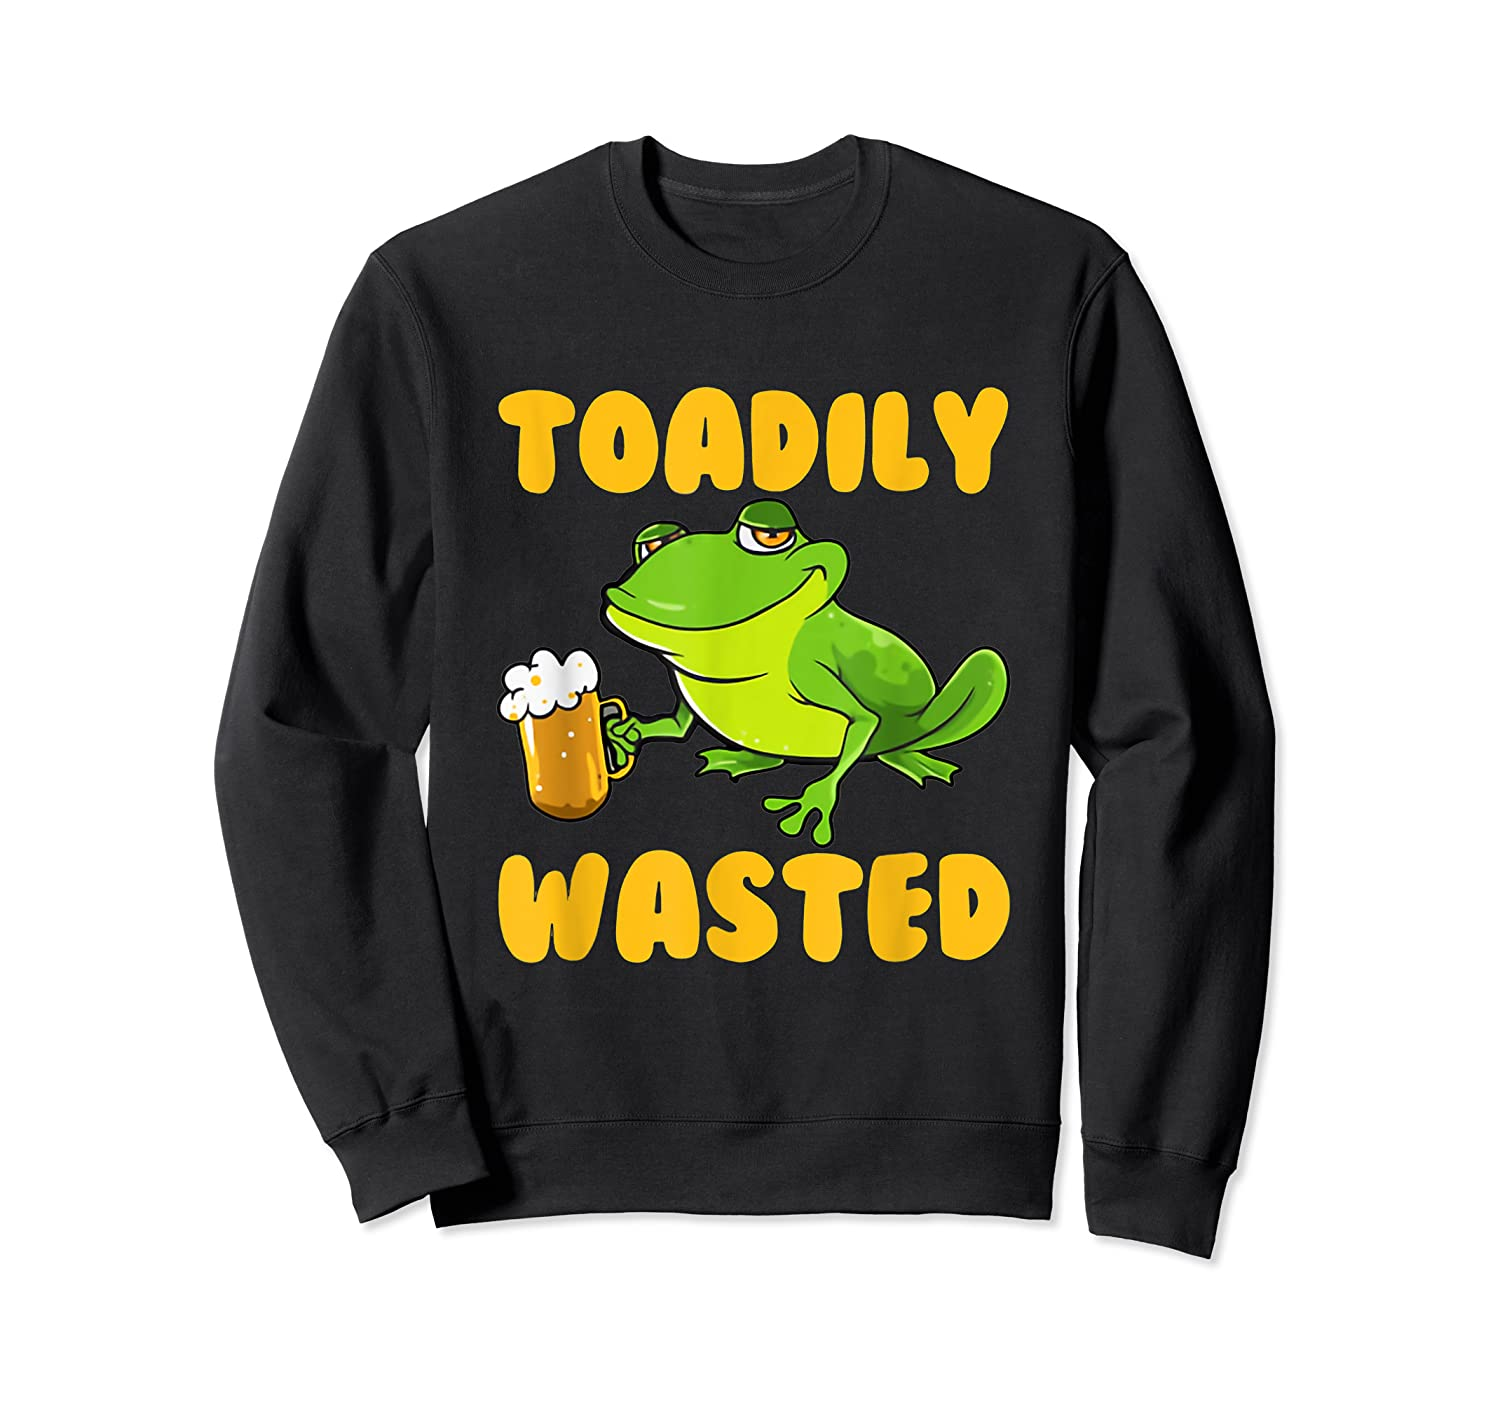 Funny Frog Drink Beer Toadily Wasted Beer Party Gift T Shirt Crewneck Sweater